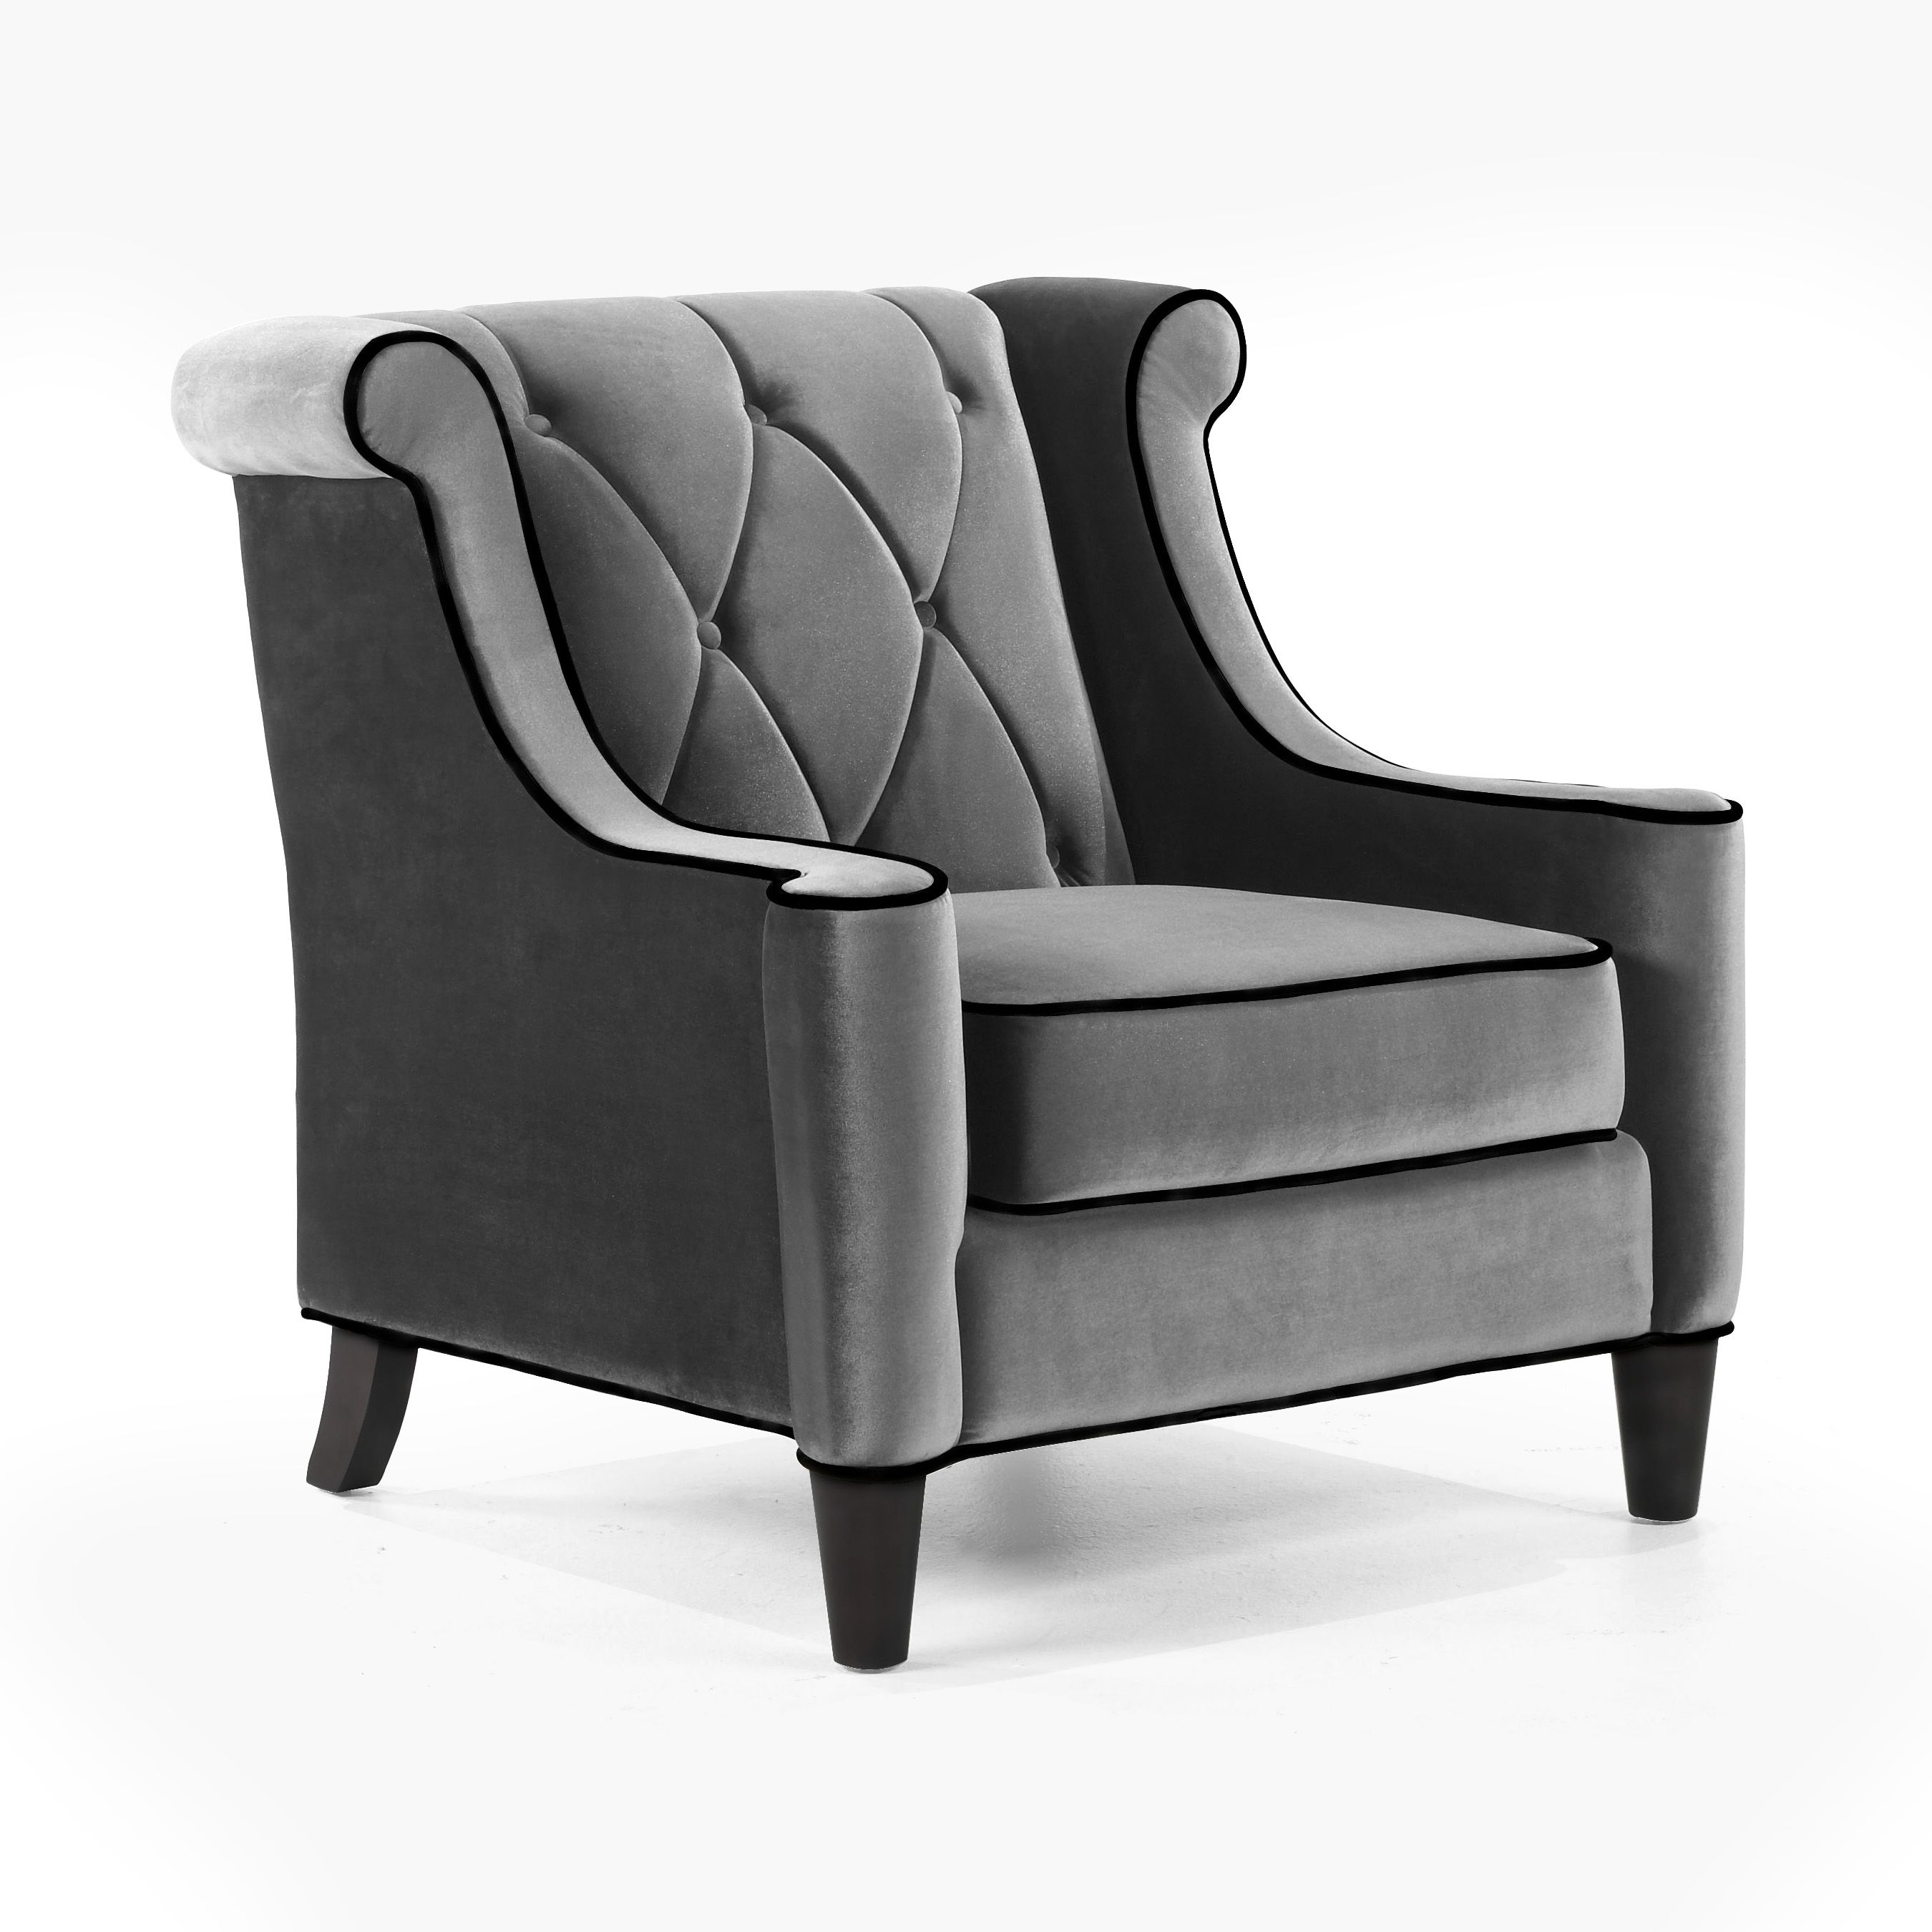 Barrister Arm Chair In Gray At Joss U0026 Main